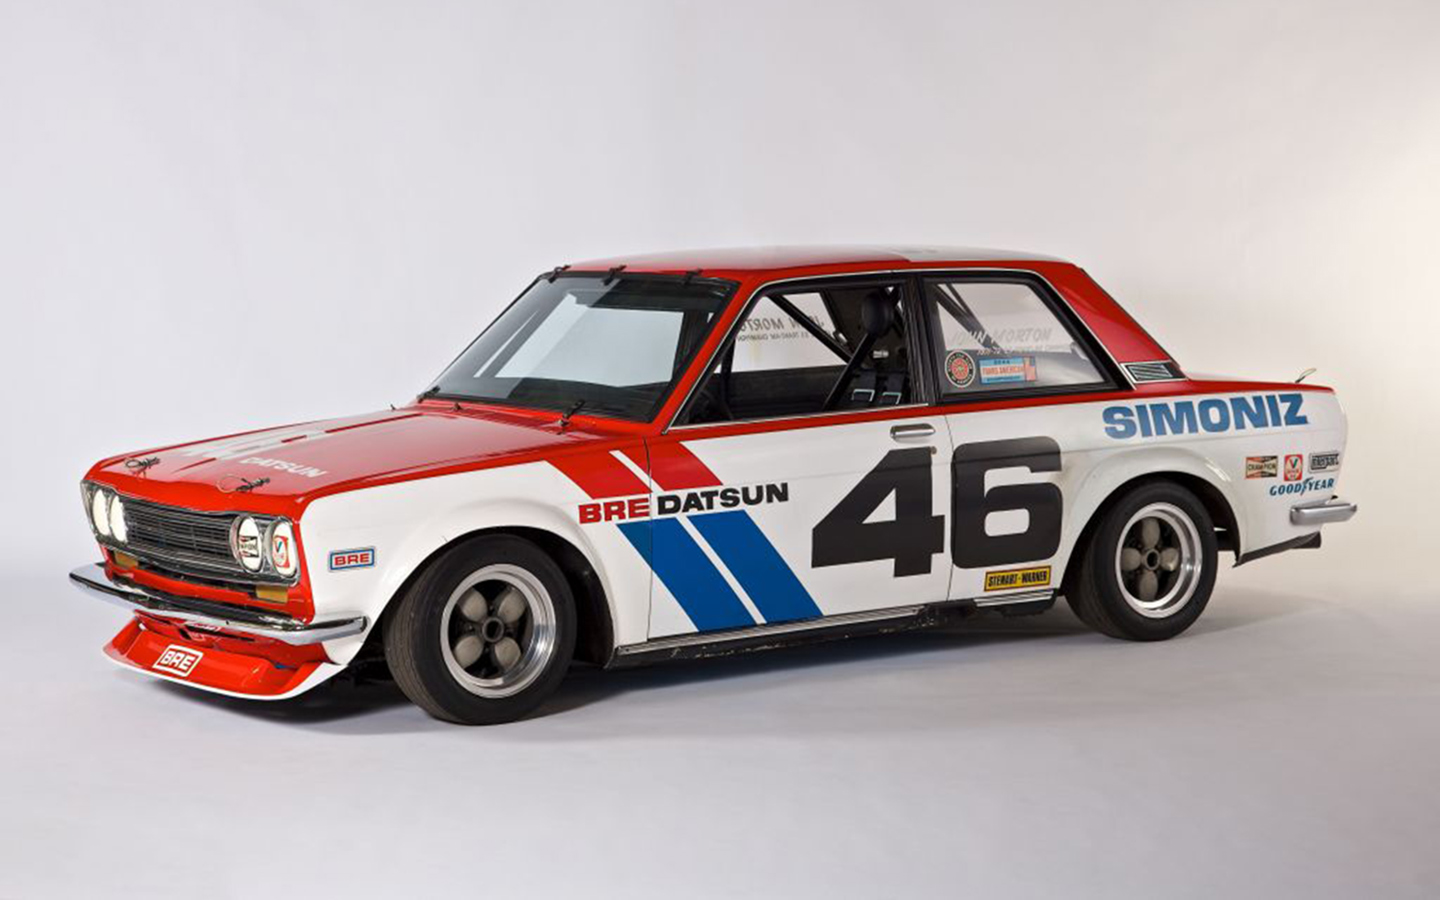 Nissan Race Car >> How Datsun Became a Dominant Force in SCCA Racing